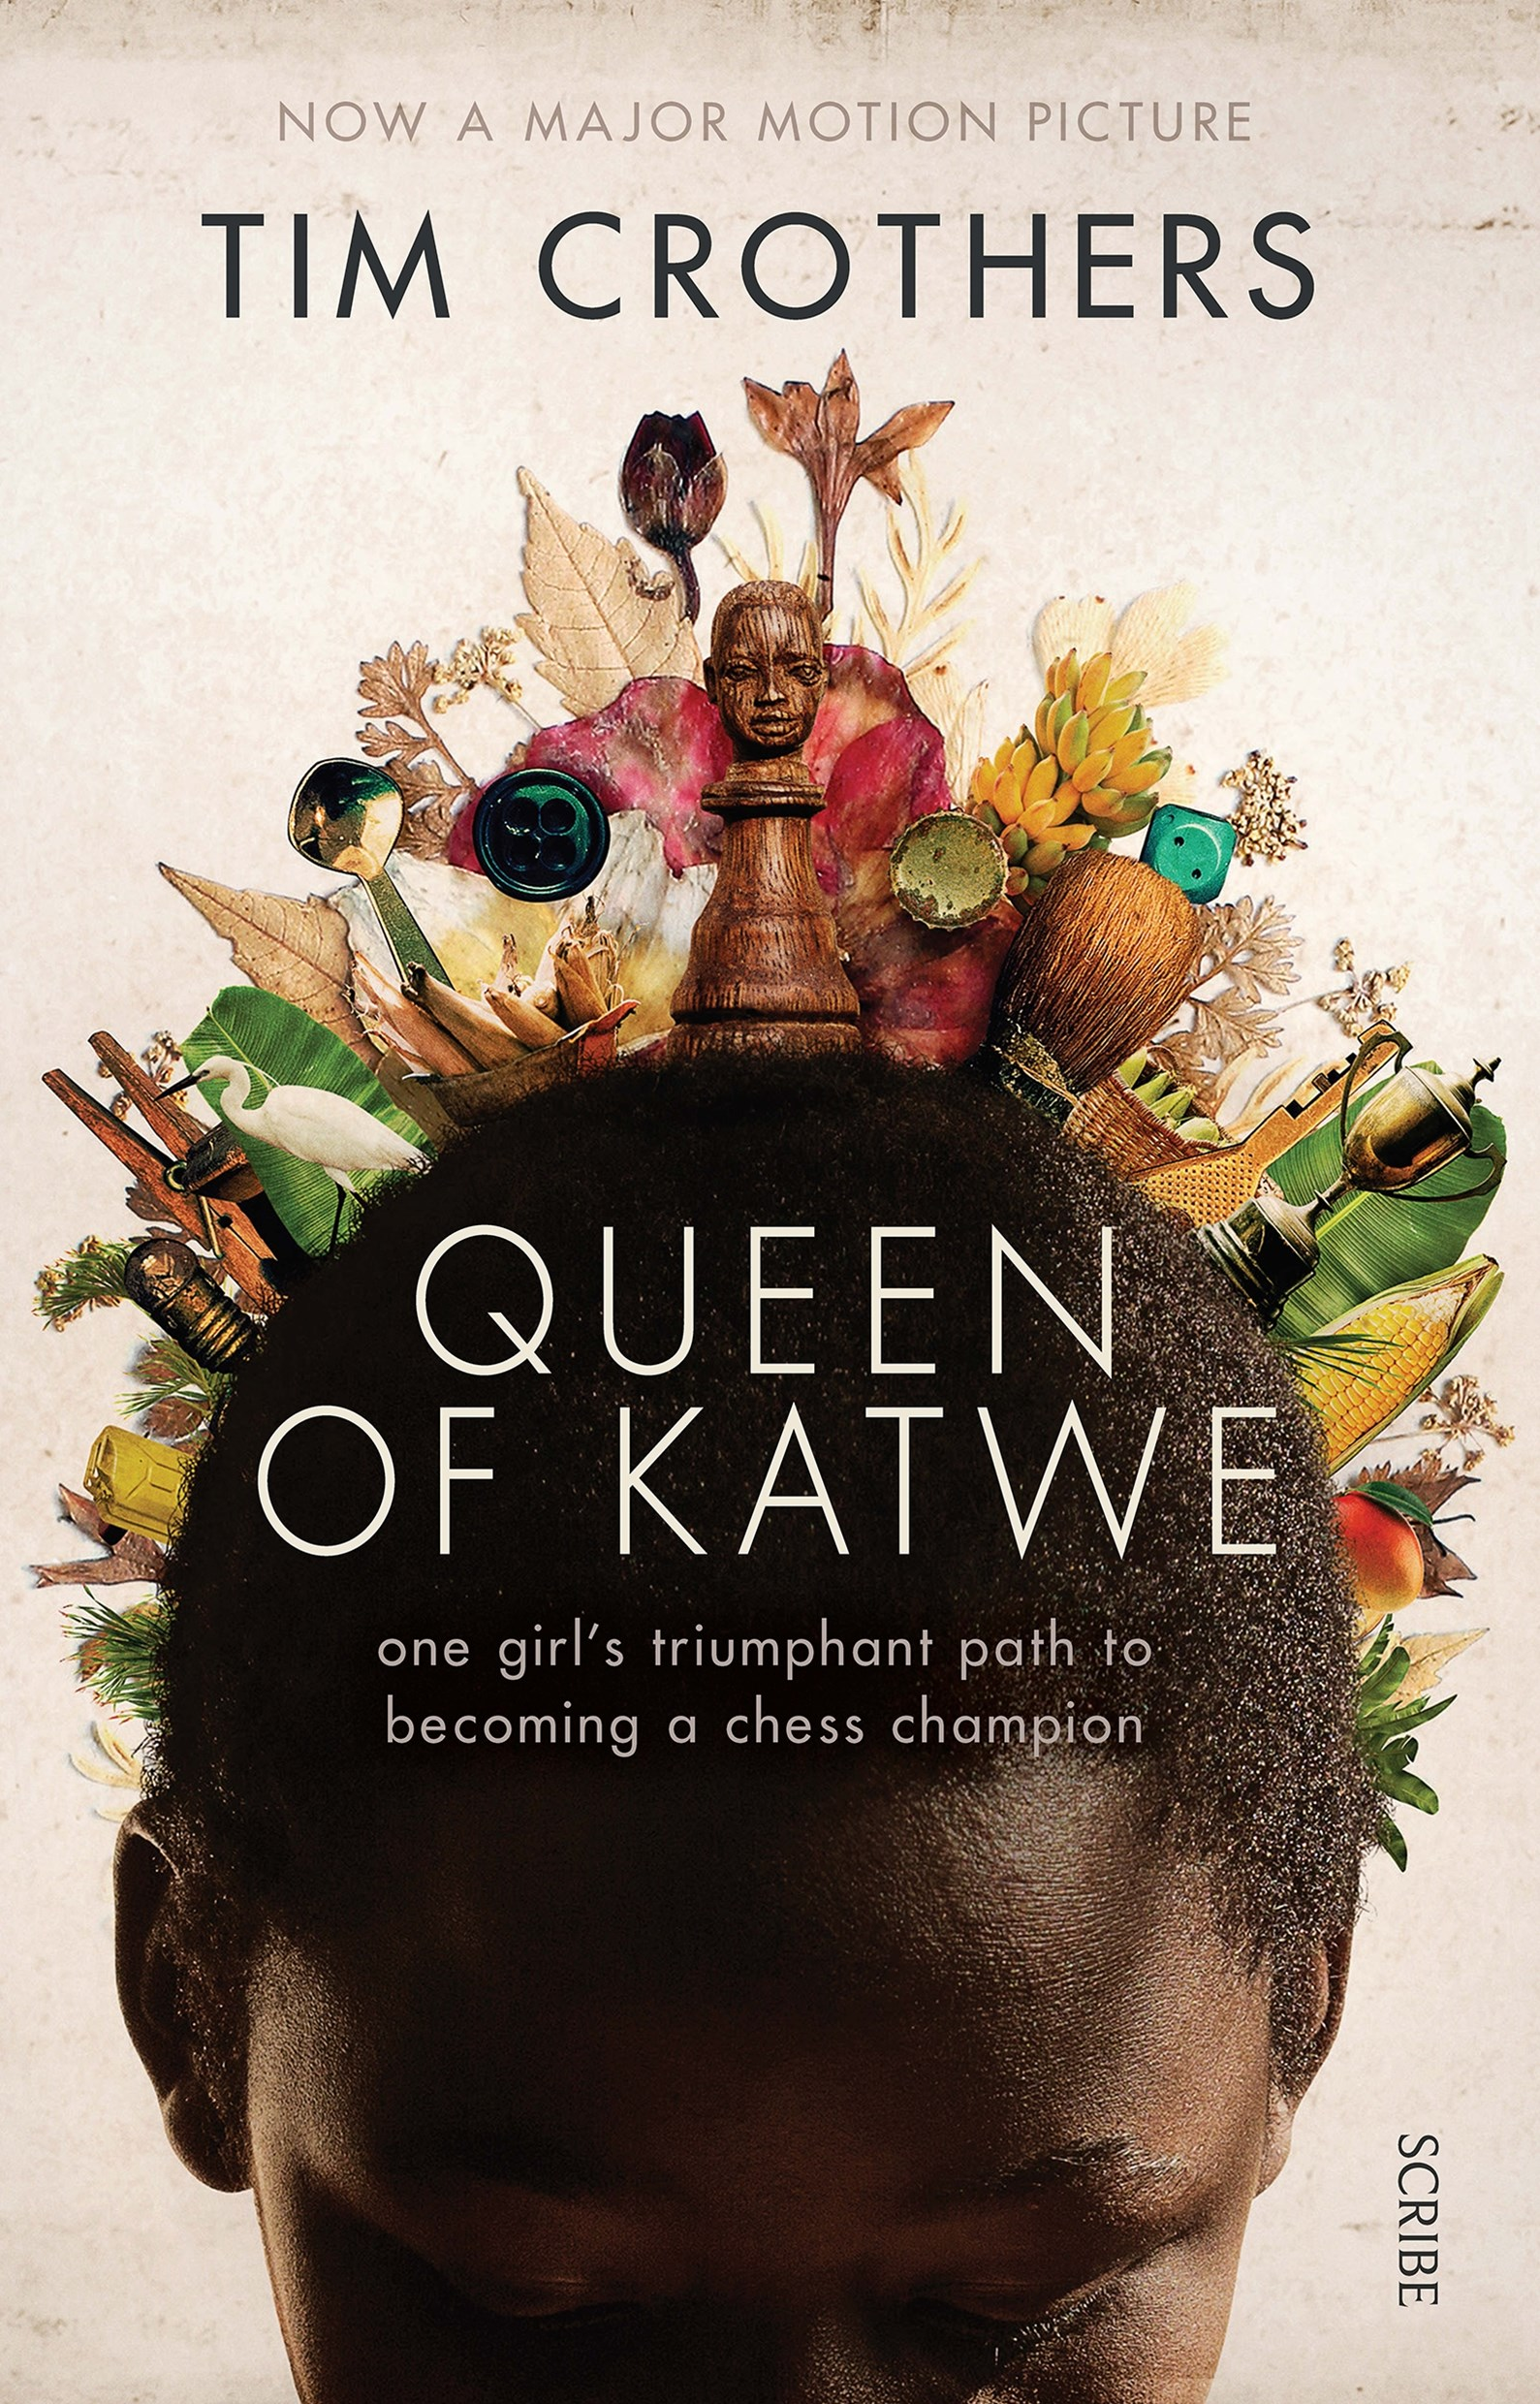 Queen of Katwe: one girl's triumphant path to becoming a chess champion